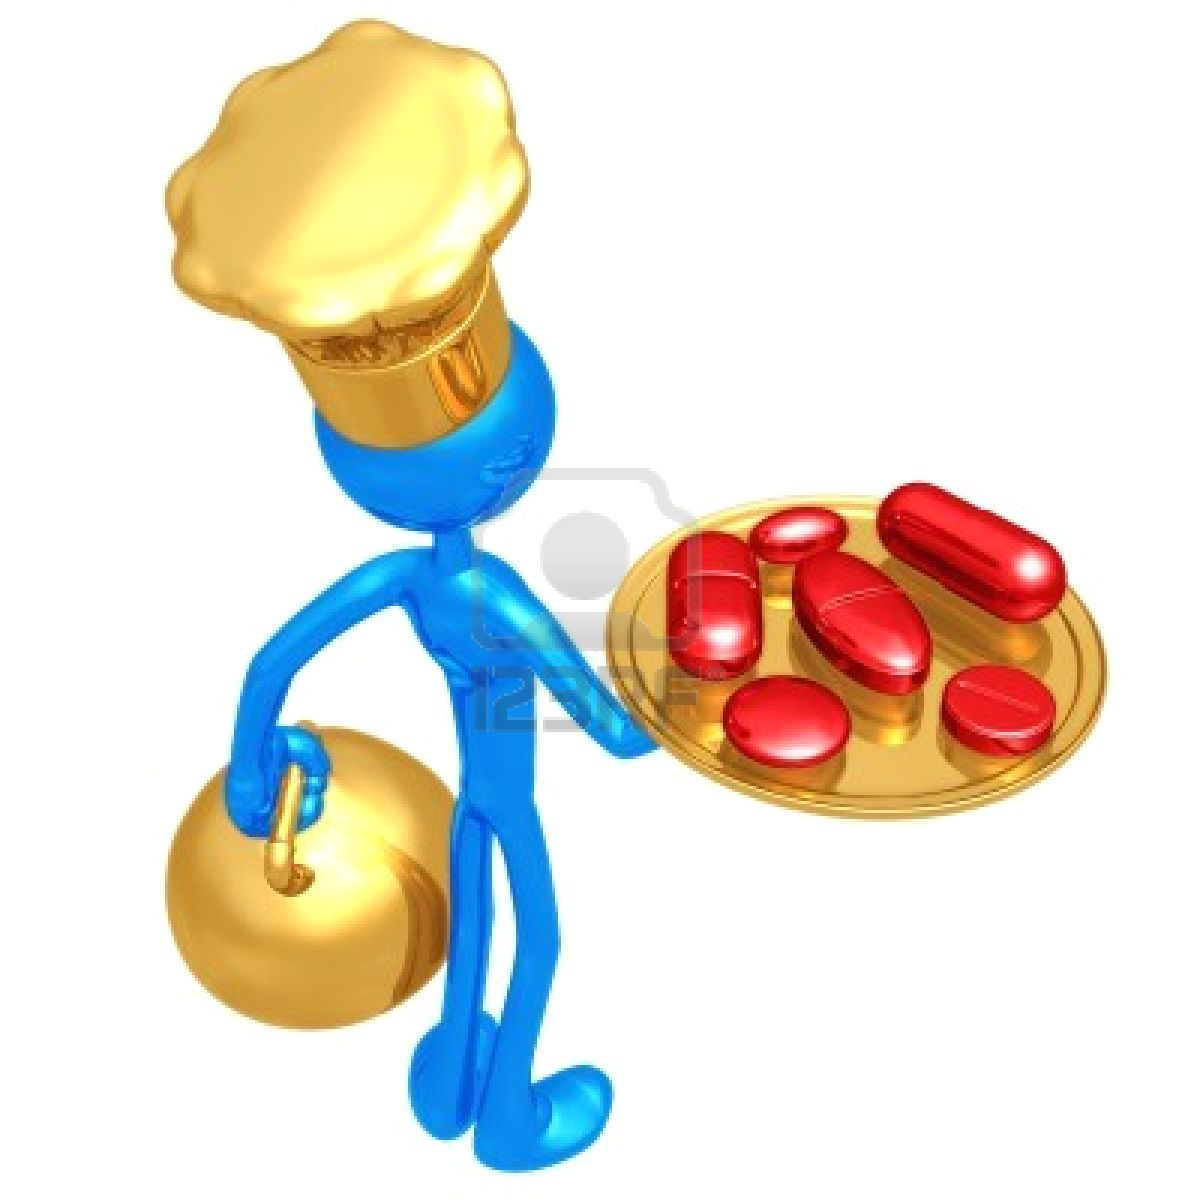 Dr. Vikram .R. Lotwala: Dangers of Diet Pills